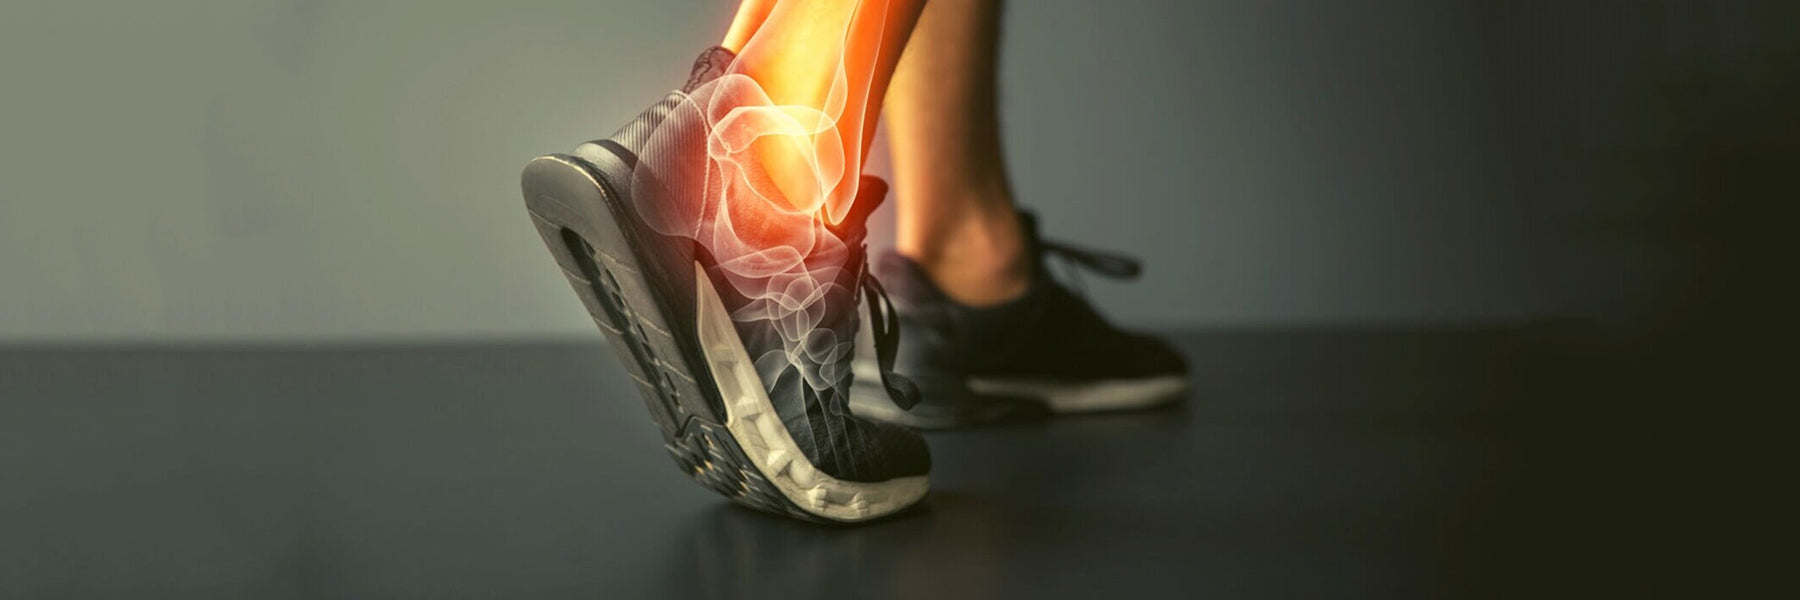 SPRAINED ANKLE TREATMENT TIPS